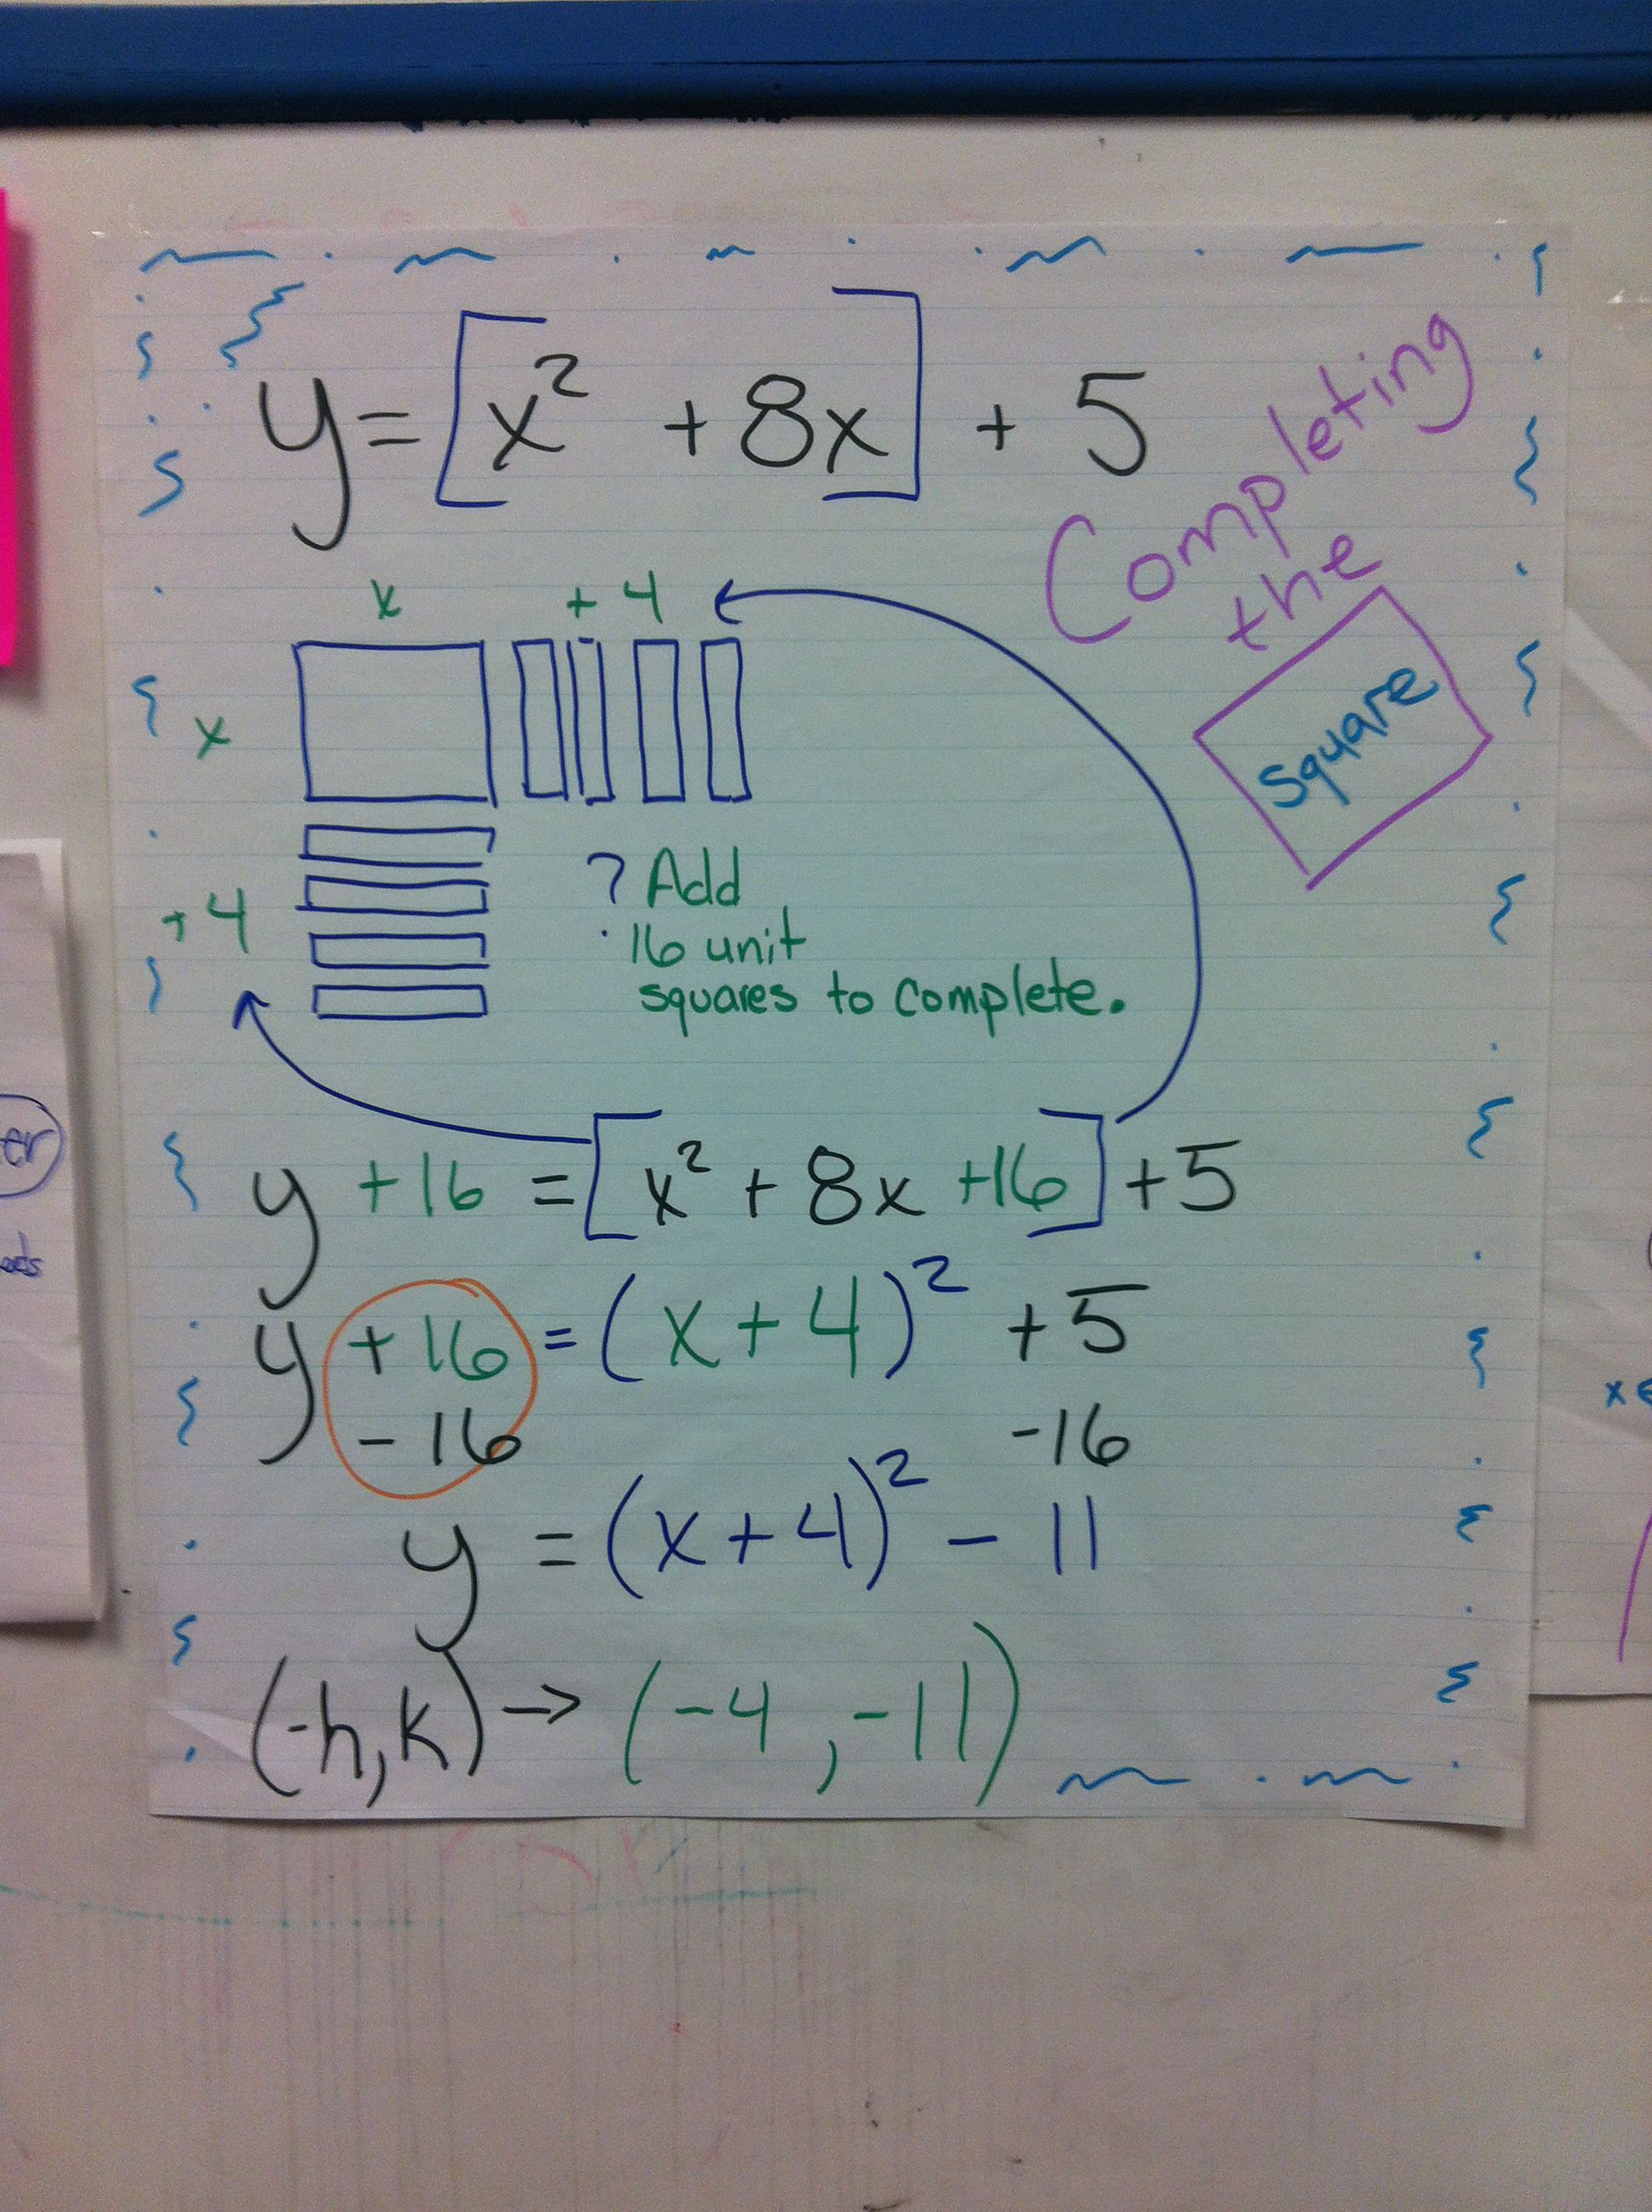 Finding The Vertex Of A Quadratic Equation By Completing